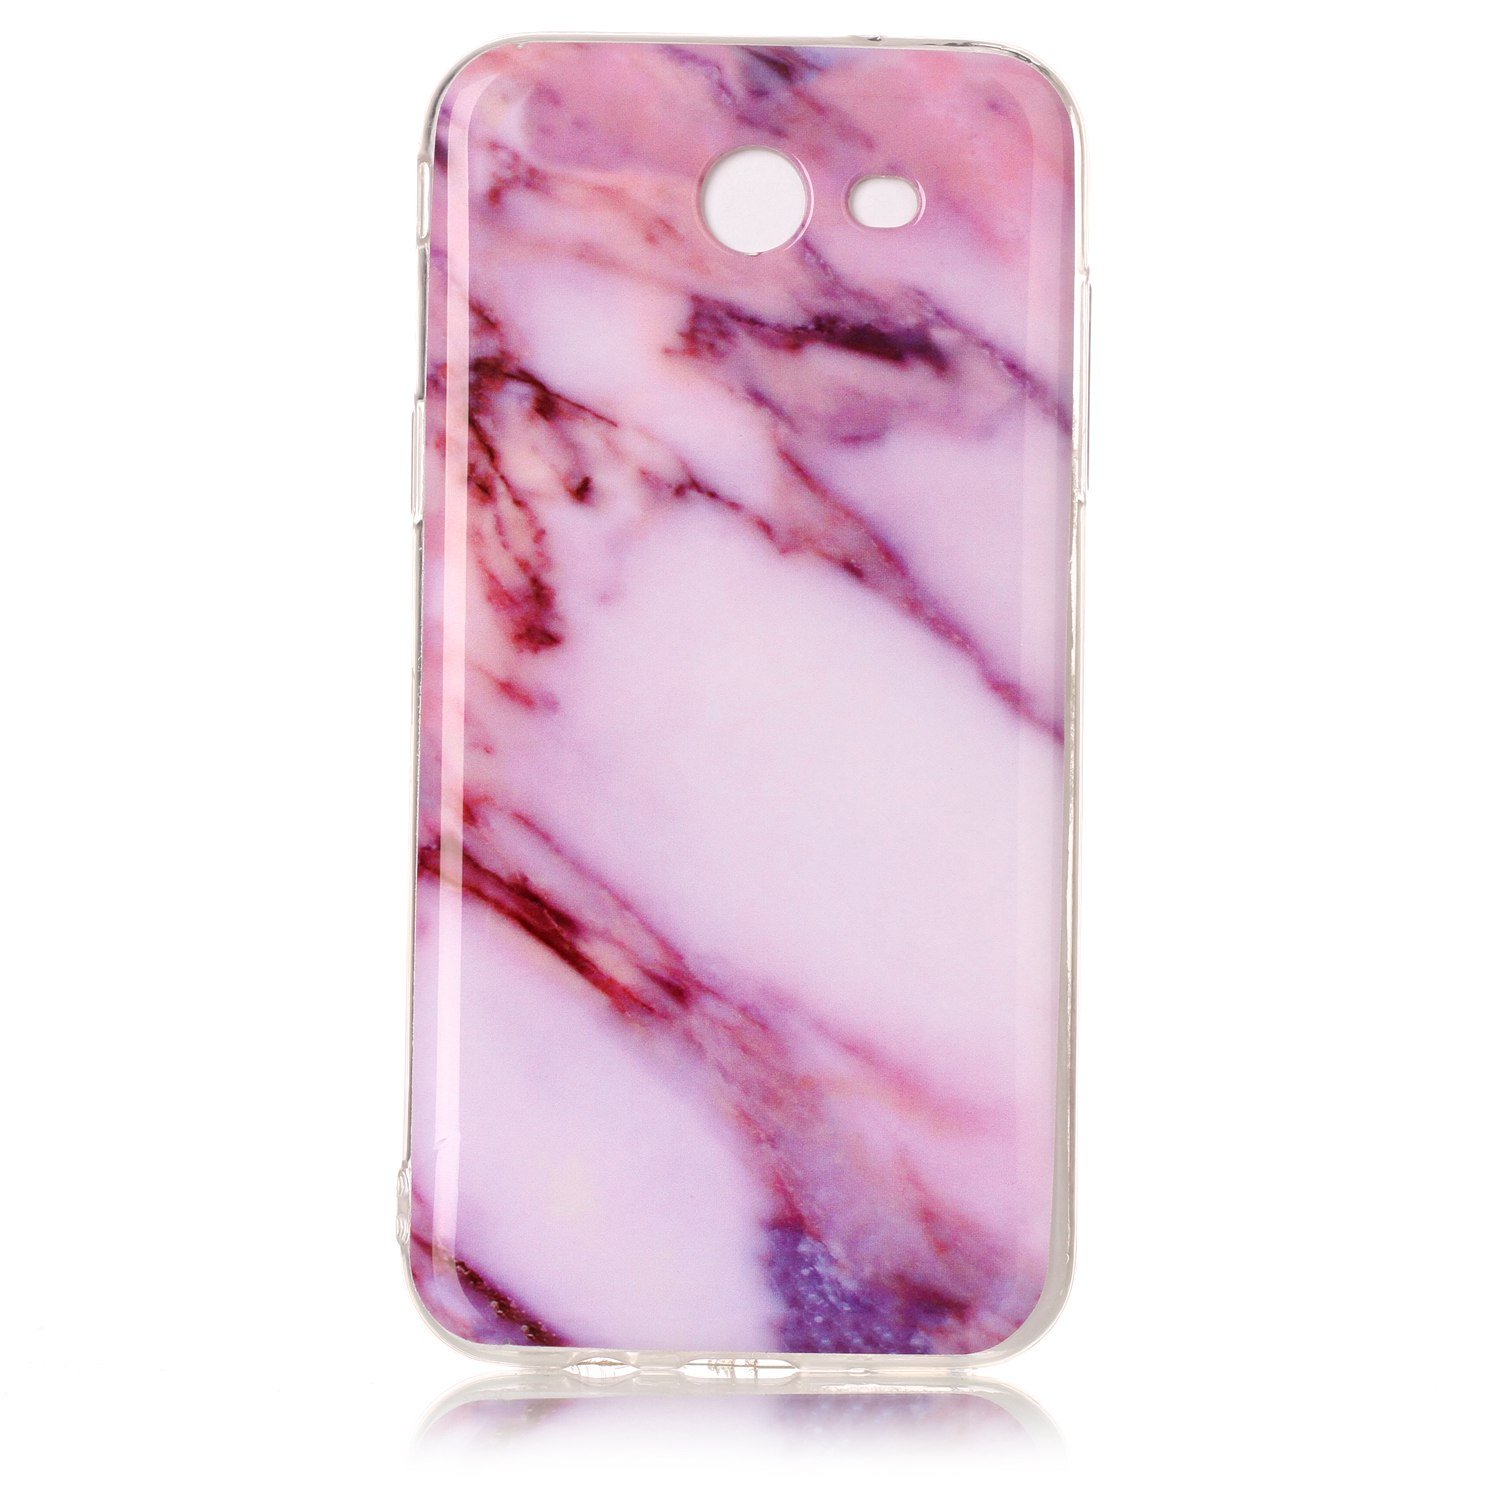 NEXCURIO Galaxy J3 Emerge/Express Prime 2/Amp Prime 2/J3 Luna Pro/J3 Prime Case Marble Soft Silicone Shockproof Scratch Resistant Protective Cover for Samsung Galaxy J3 (2017) - YHU102191 #5